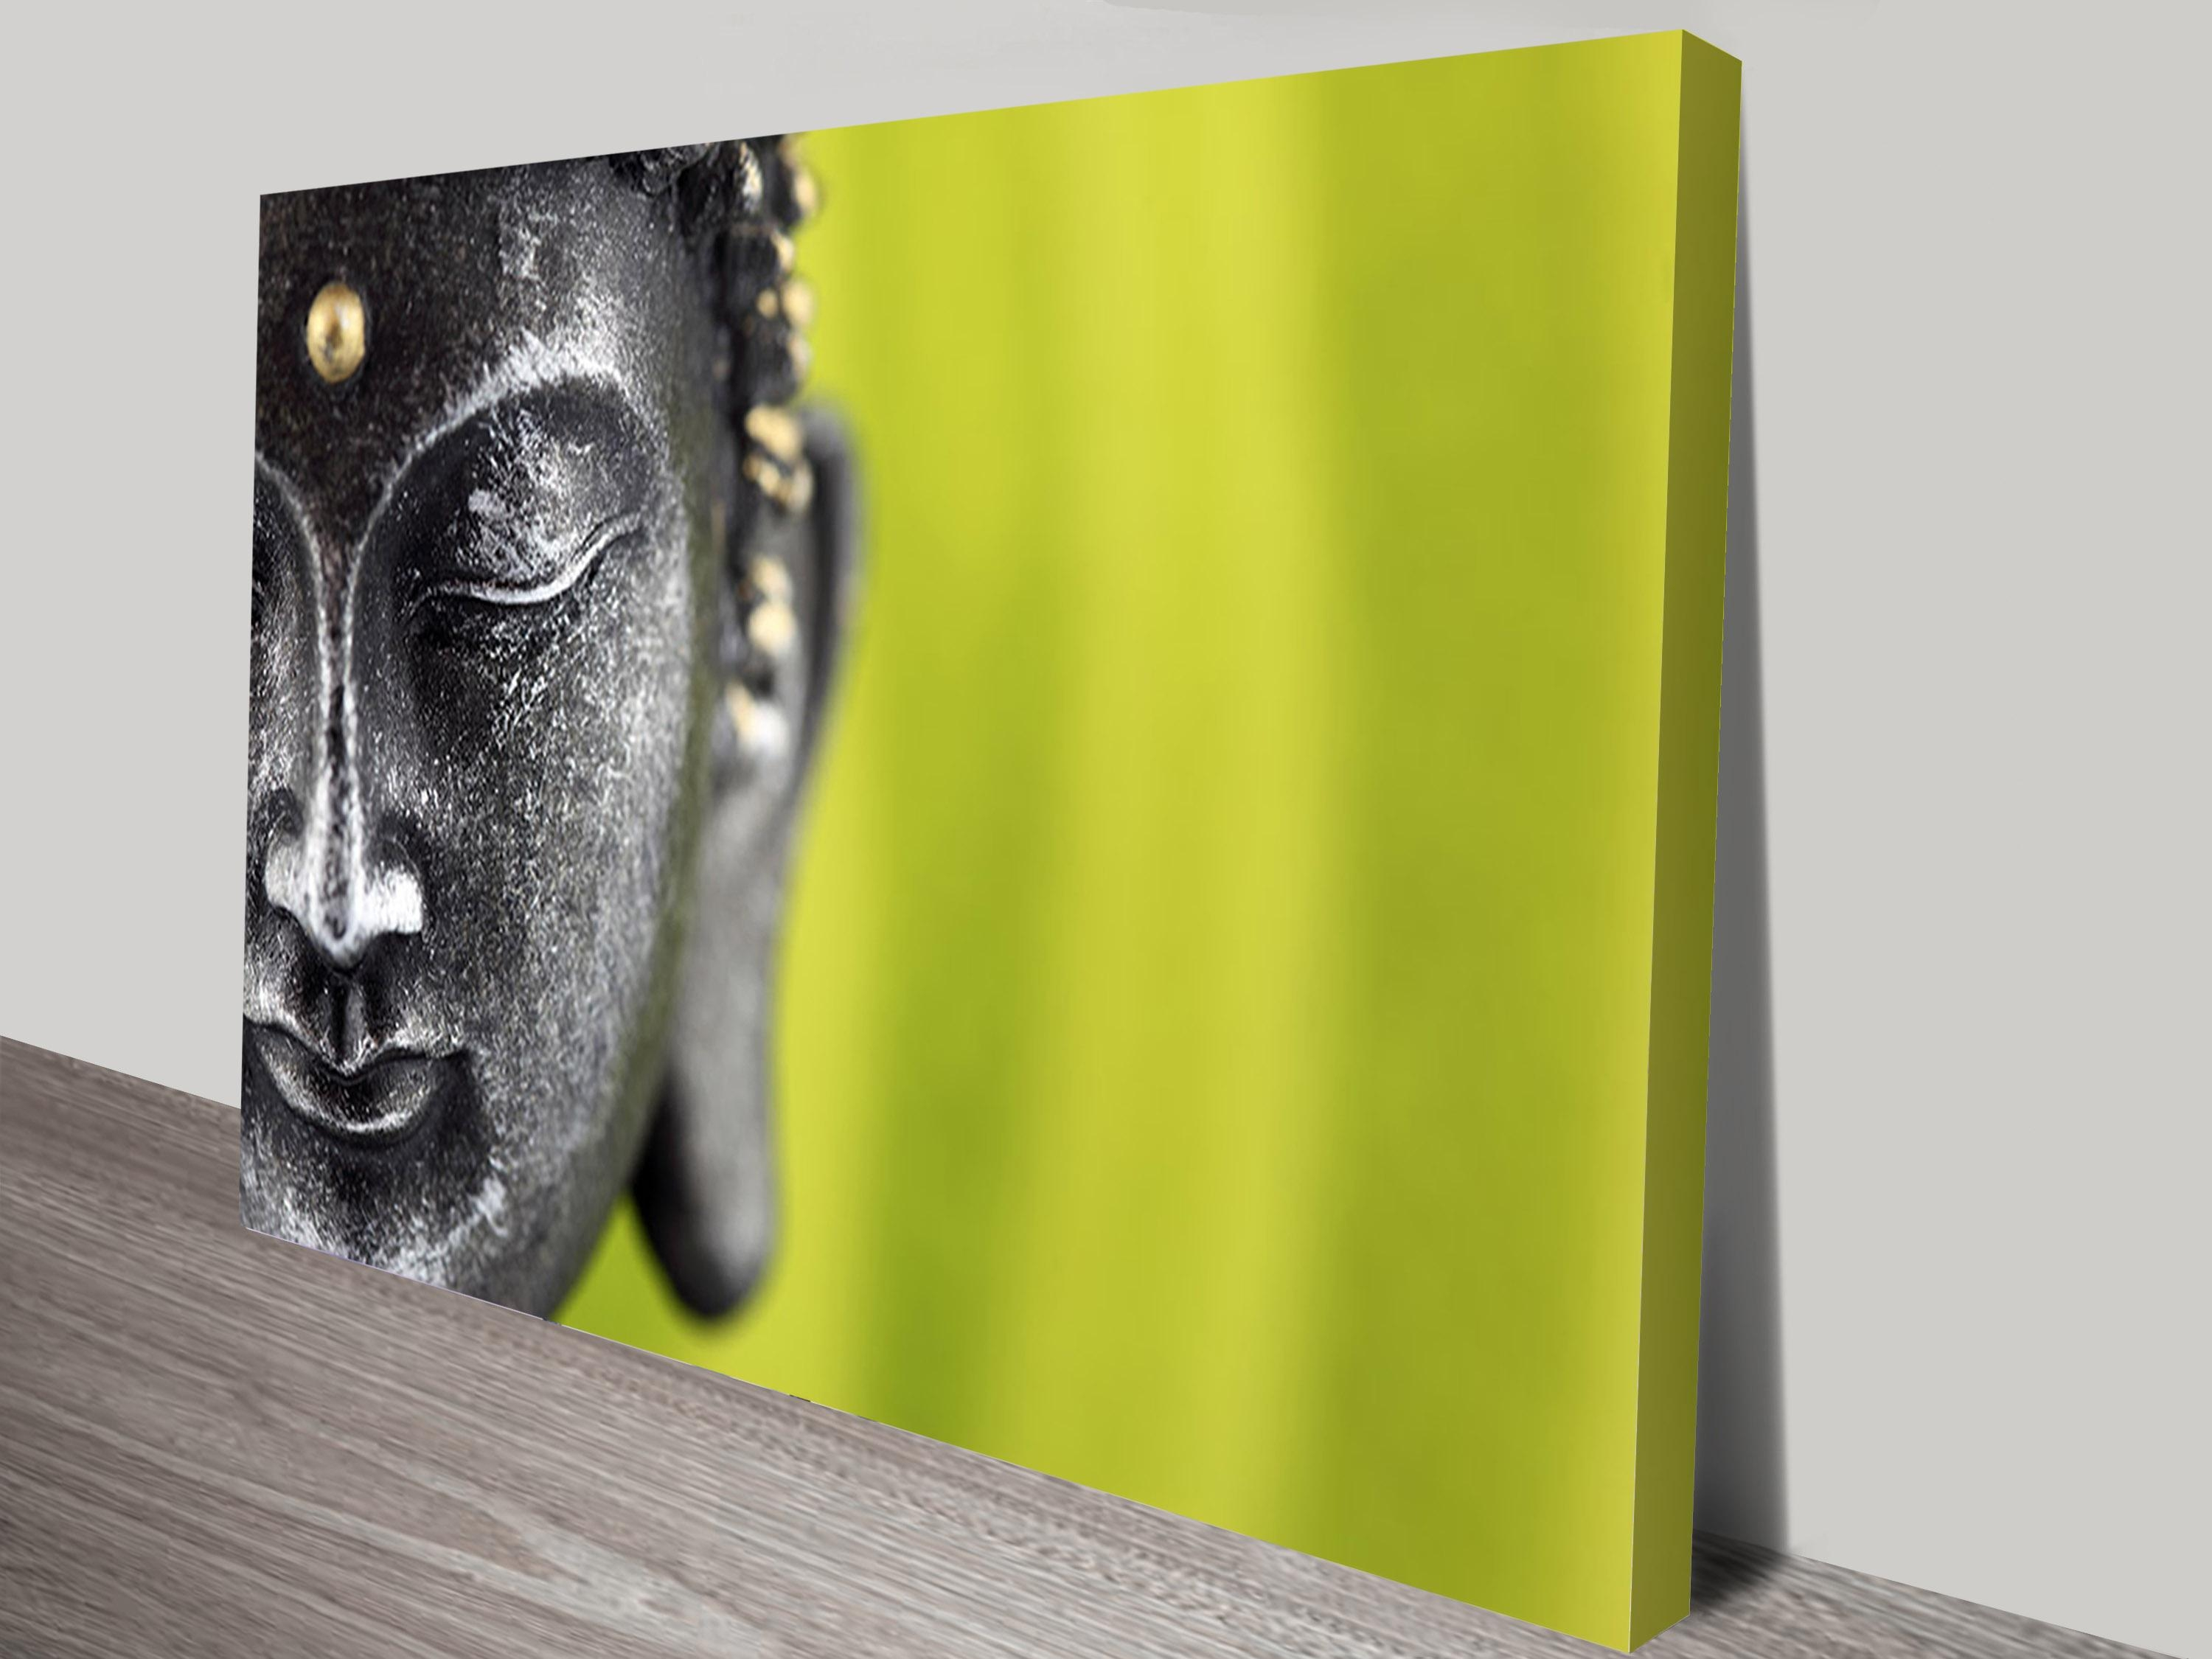 Wall Art Ideas: Silver Buddha Wall Art (Explore #8 of 20 Photos)